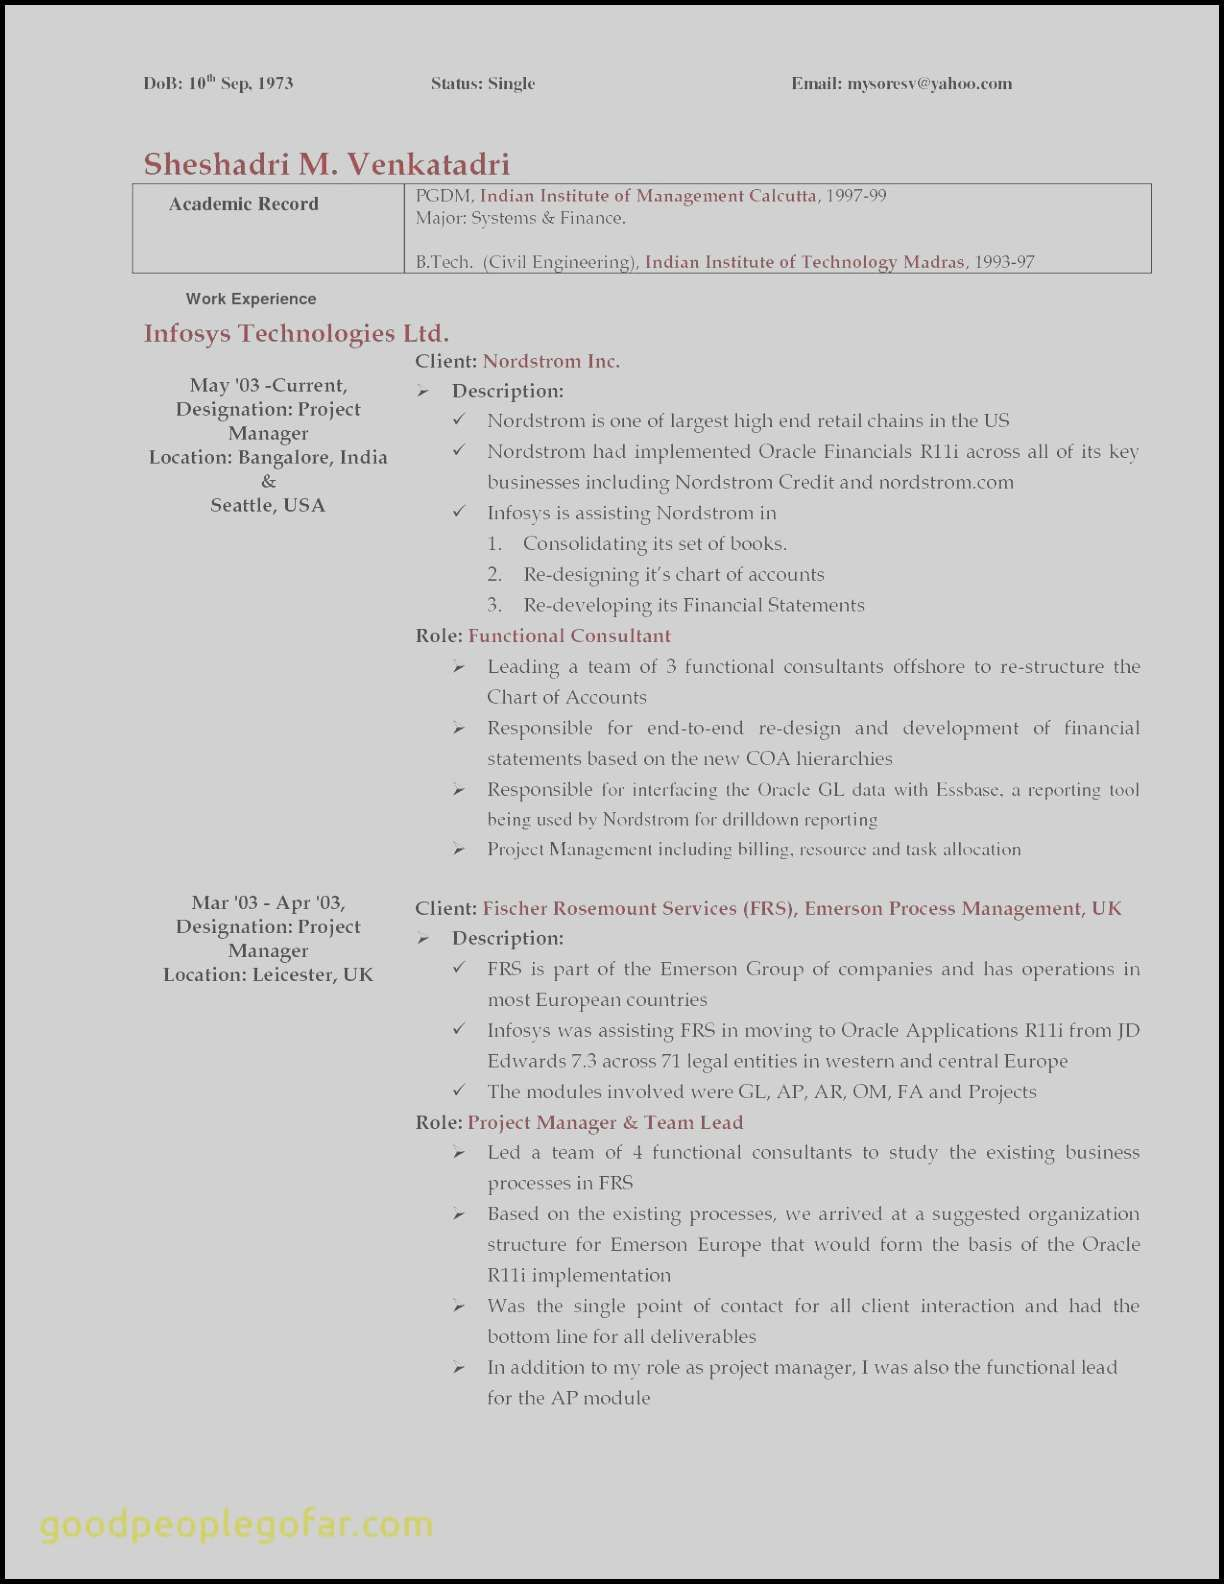 Single Job Resume - Curriculum Vitae Skills – Cook Resume Sample Cook Resume Sample Pdf